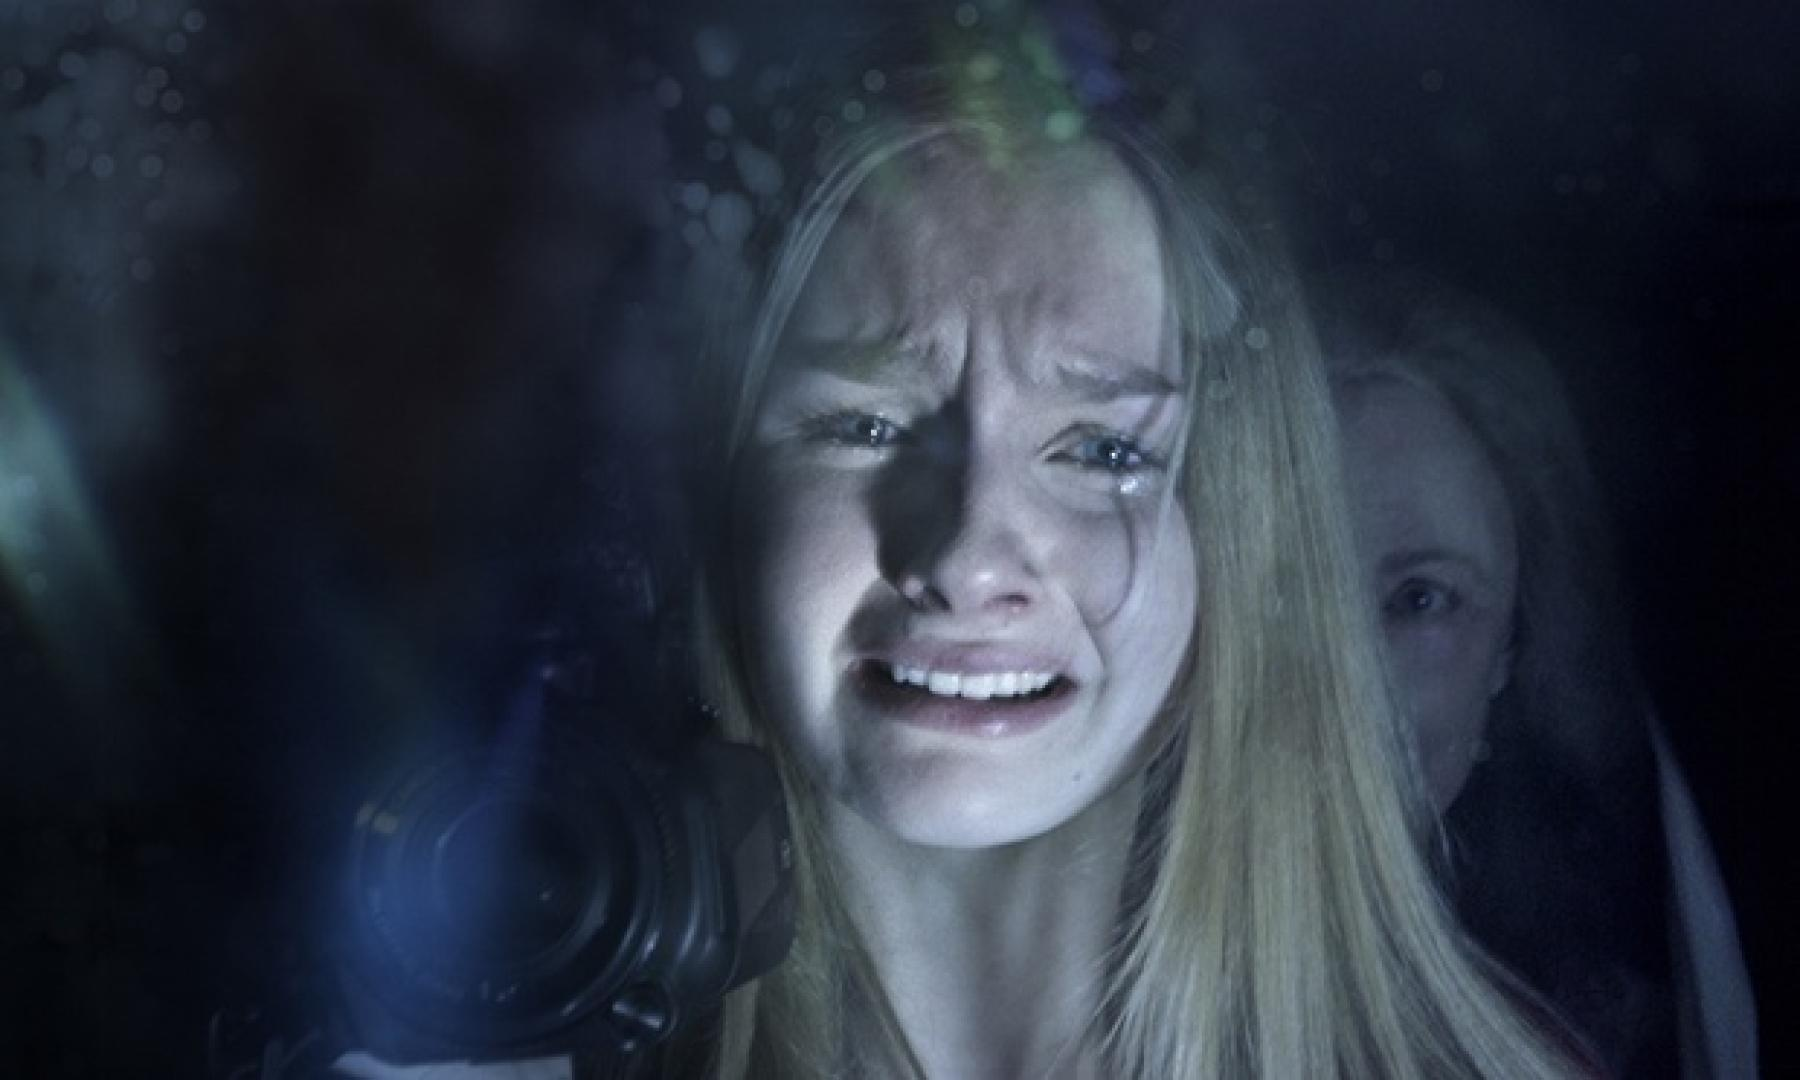 Box Office: The Visit